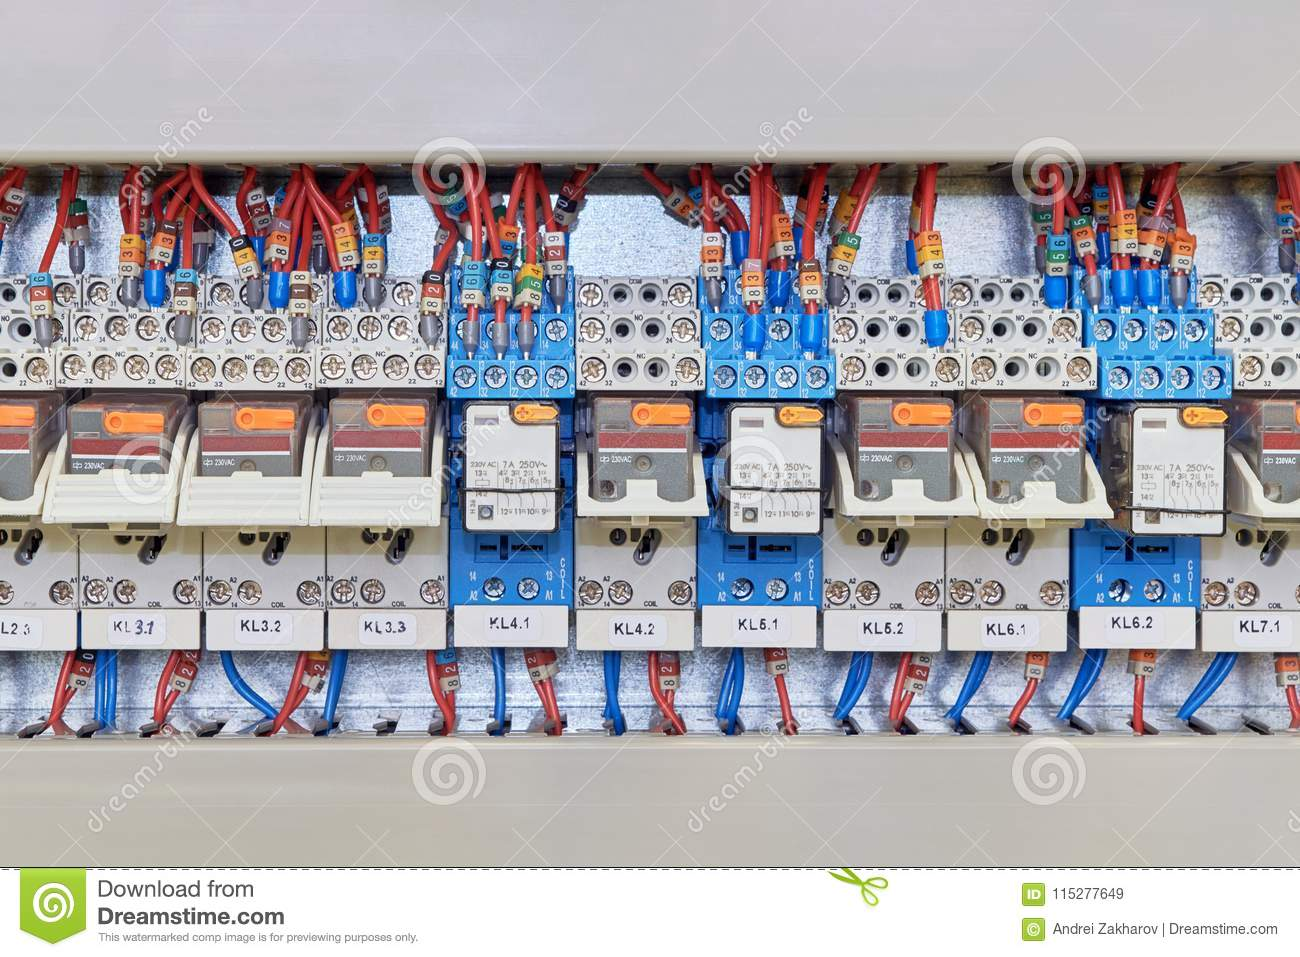 There Are Several Intermediate Relays Installed In A Range The Relay Circuit Numbers Electrical Cabinet